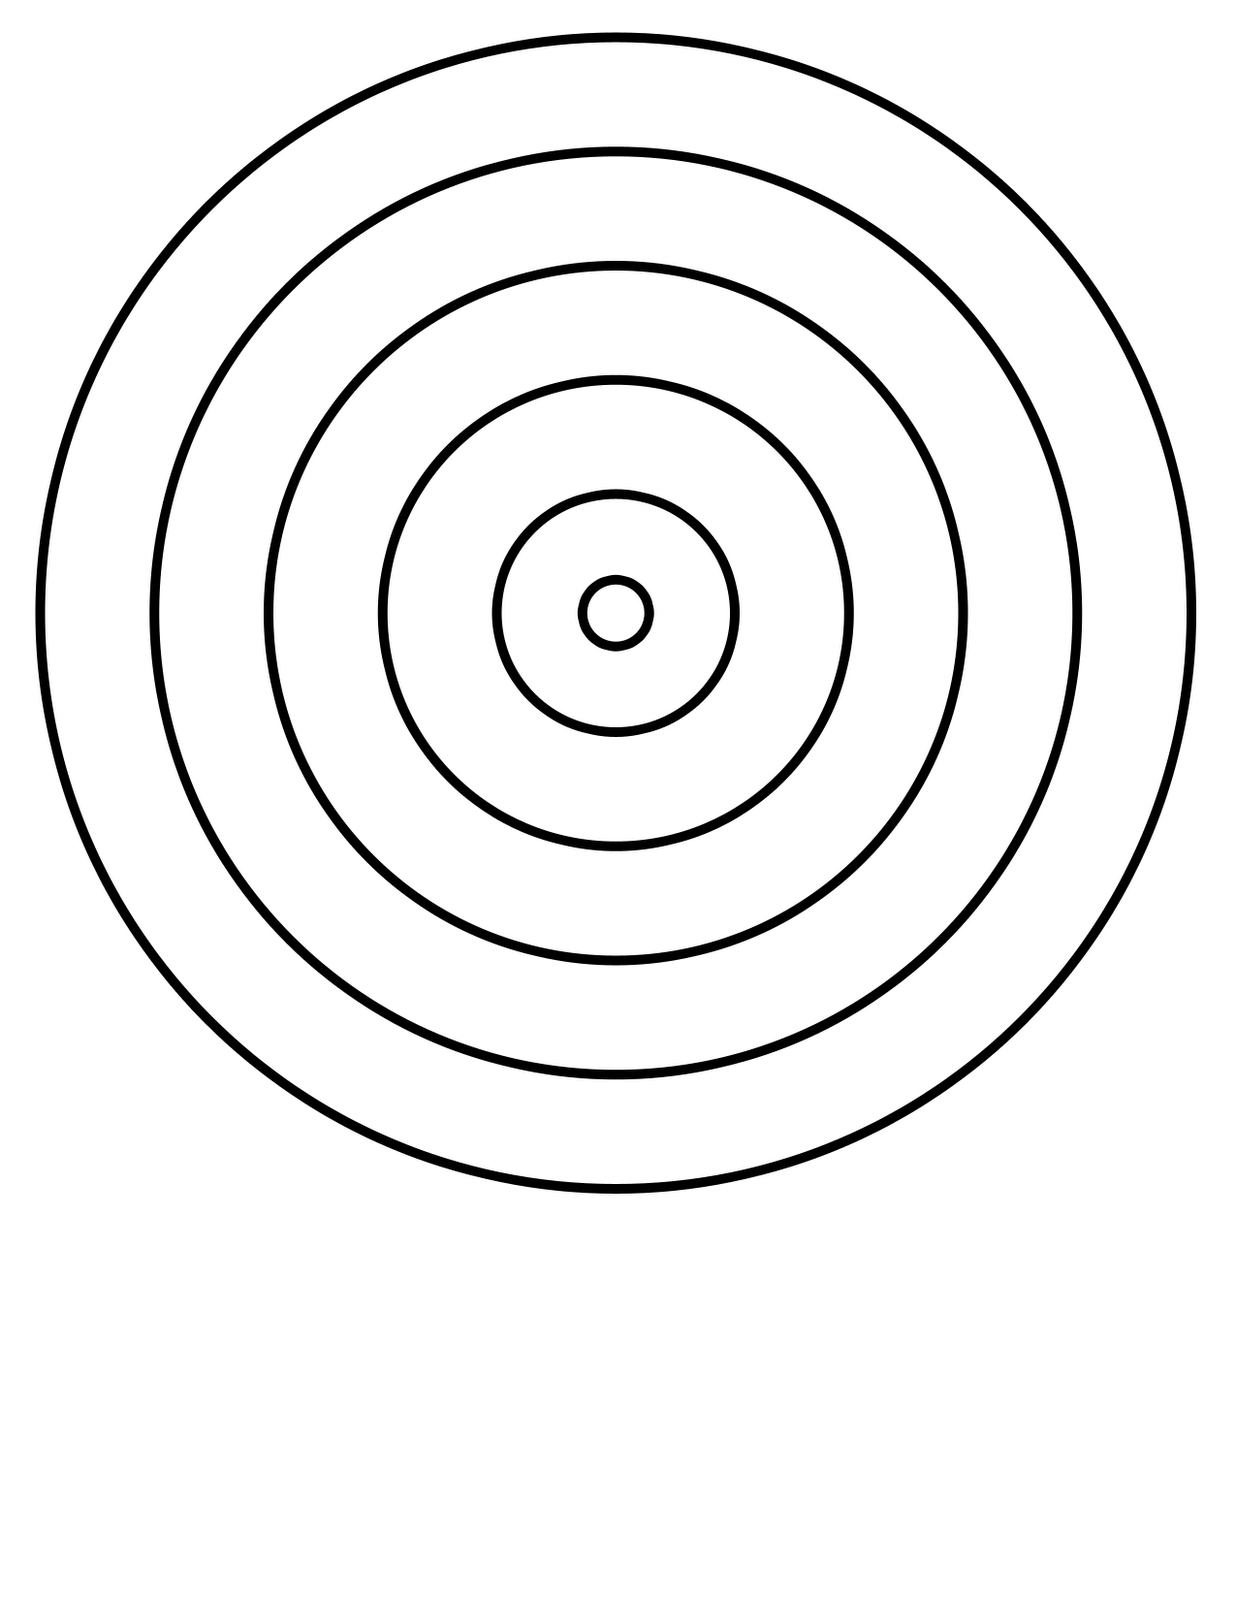 Archery Target Coloring Pages